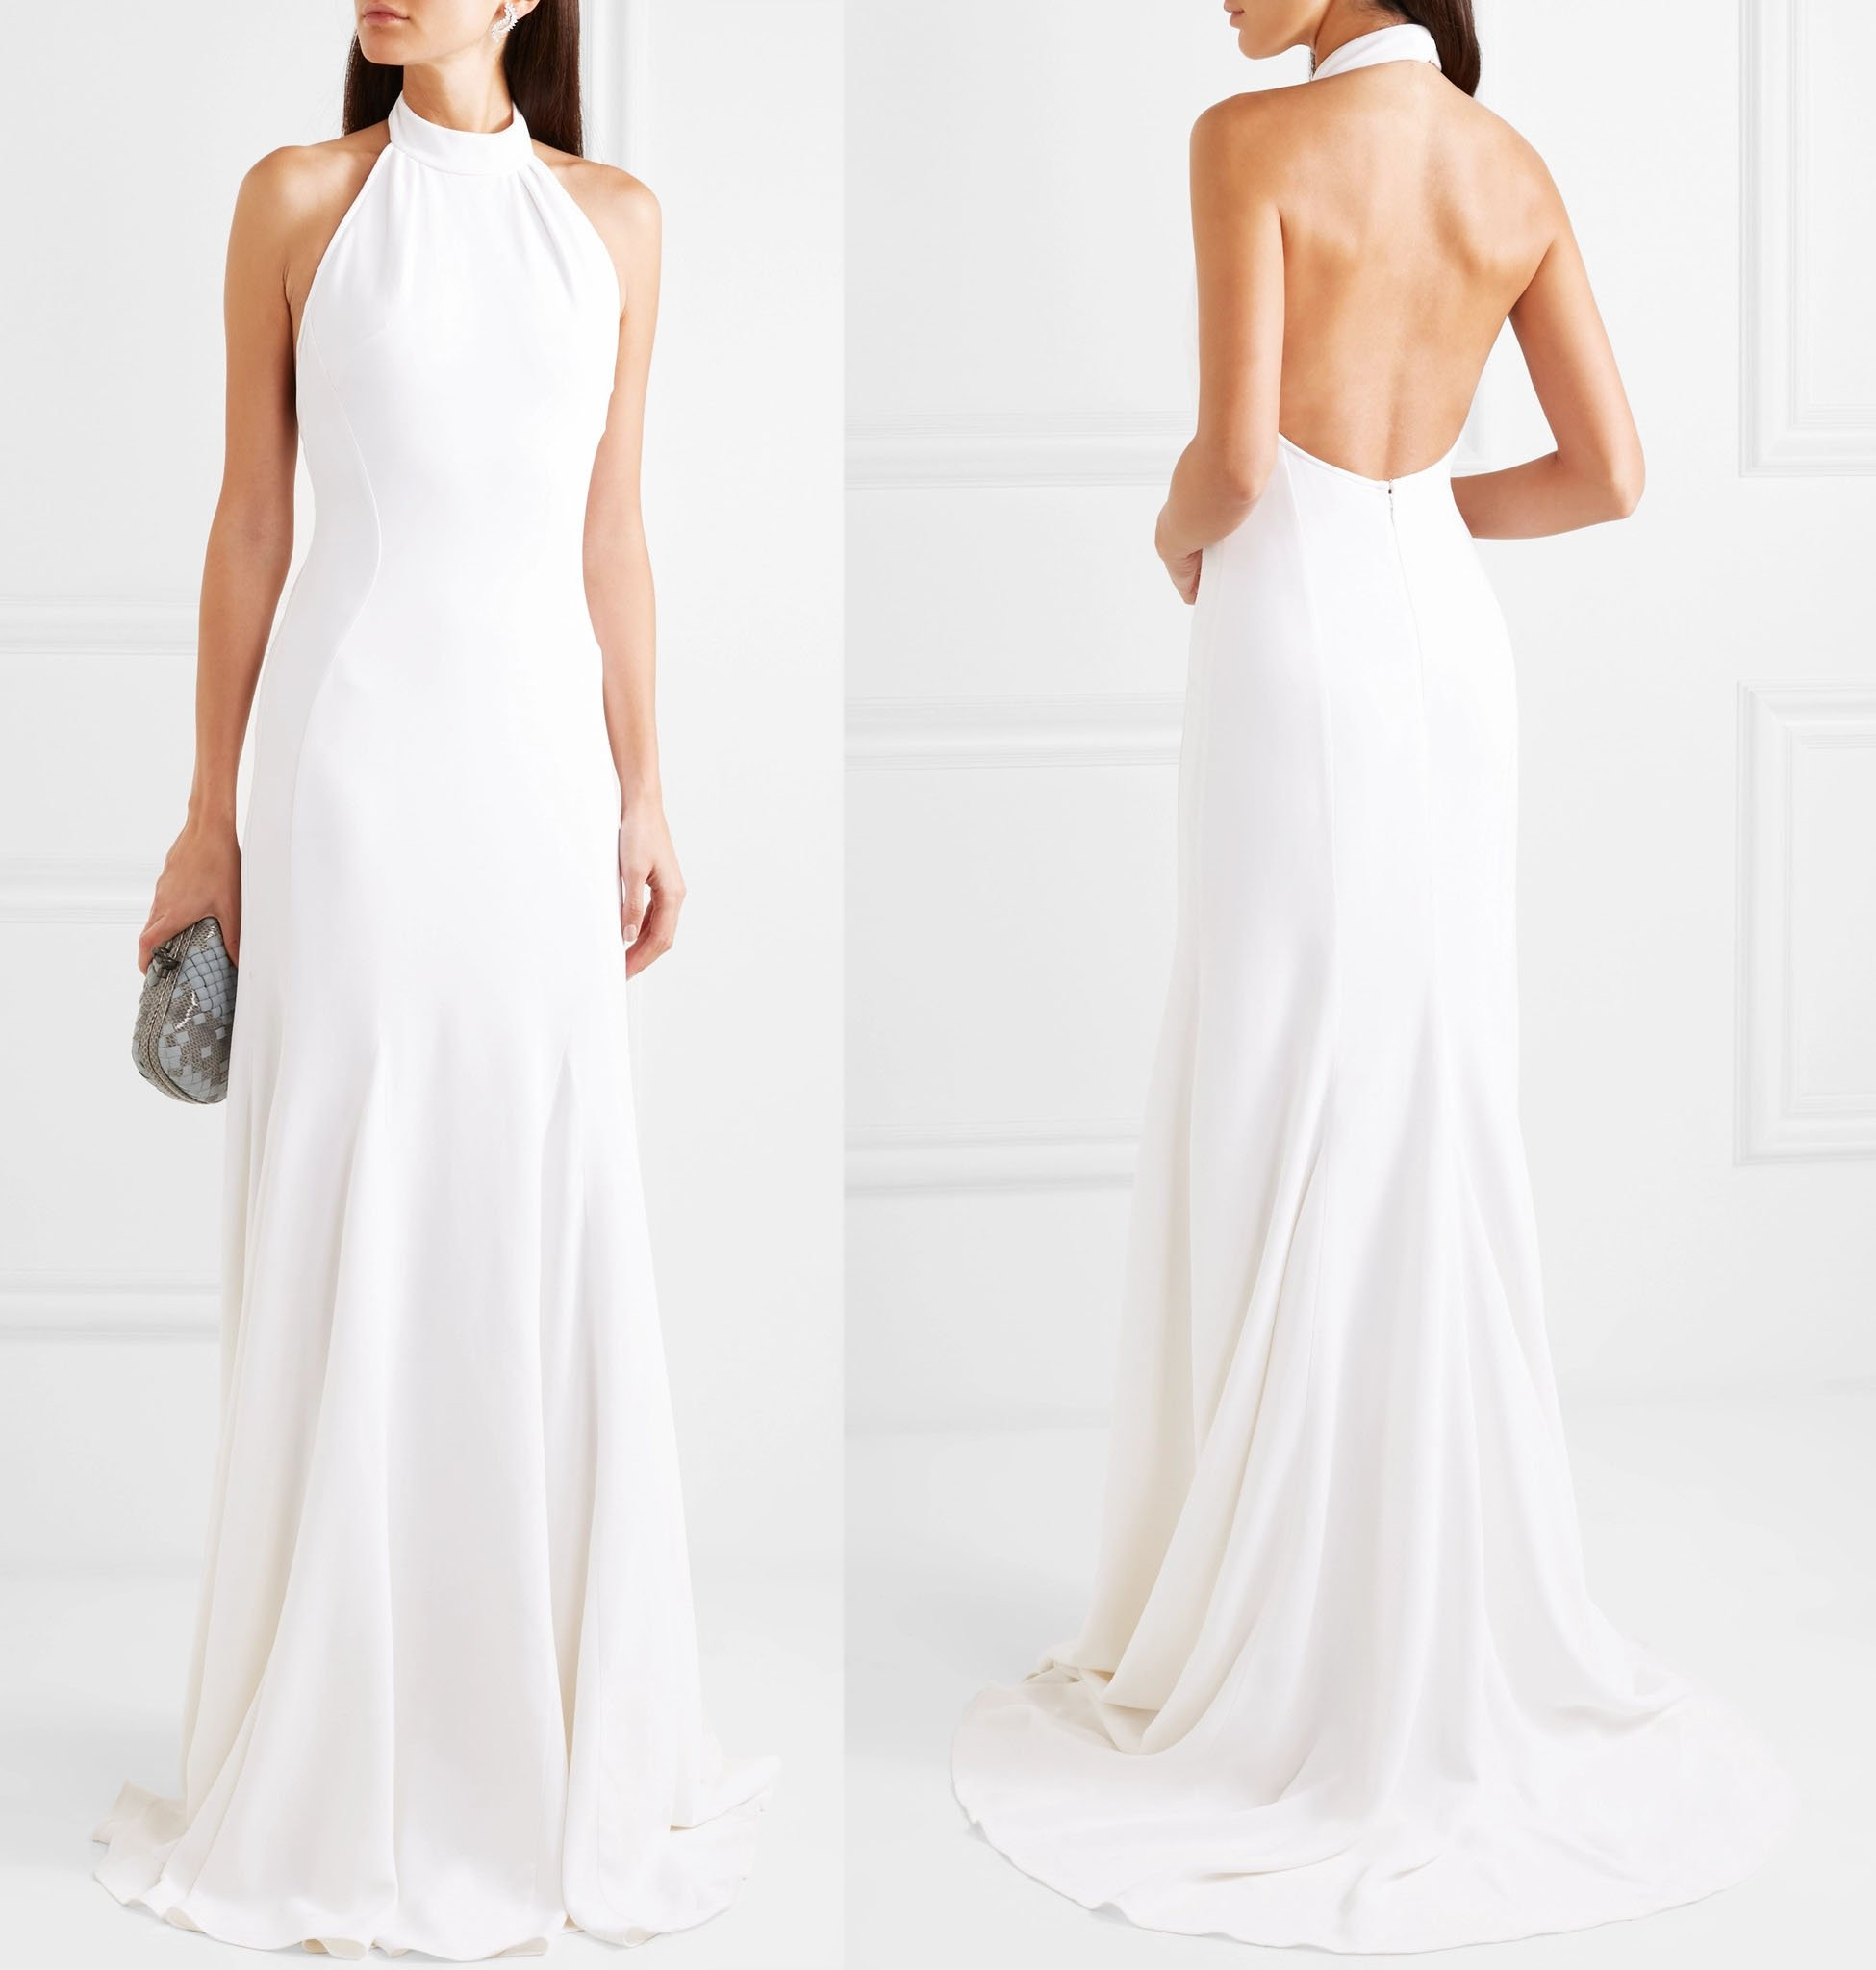 Meghan Markle's Stella McCartney white stretch-crepe halterneck wedding reception dress has been made available to the public for $5,200